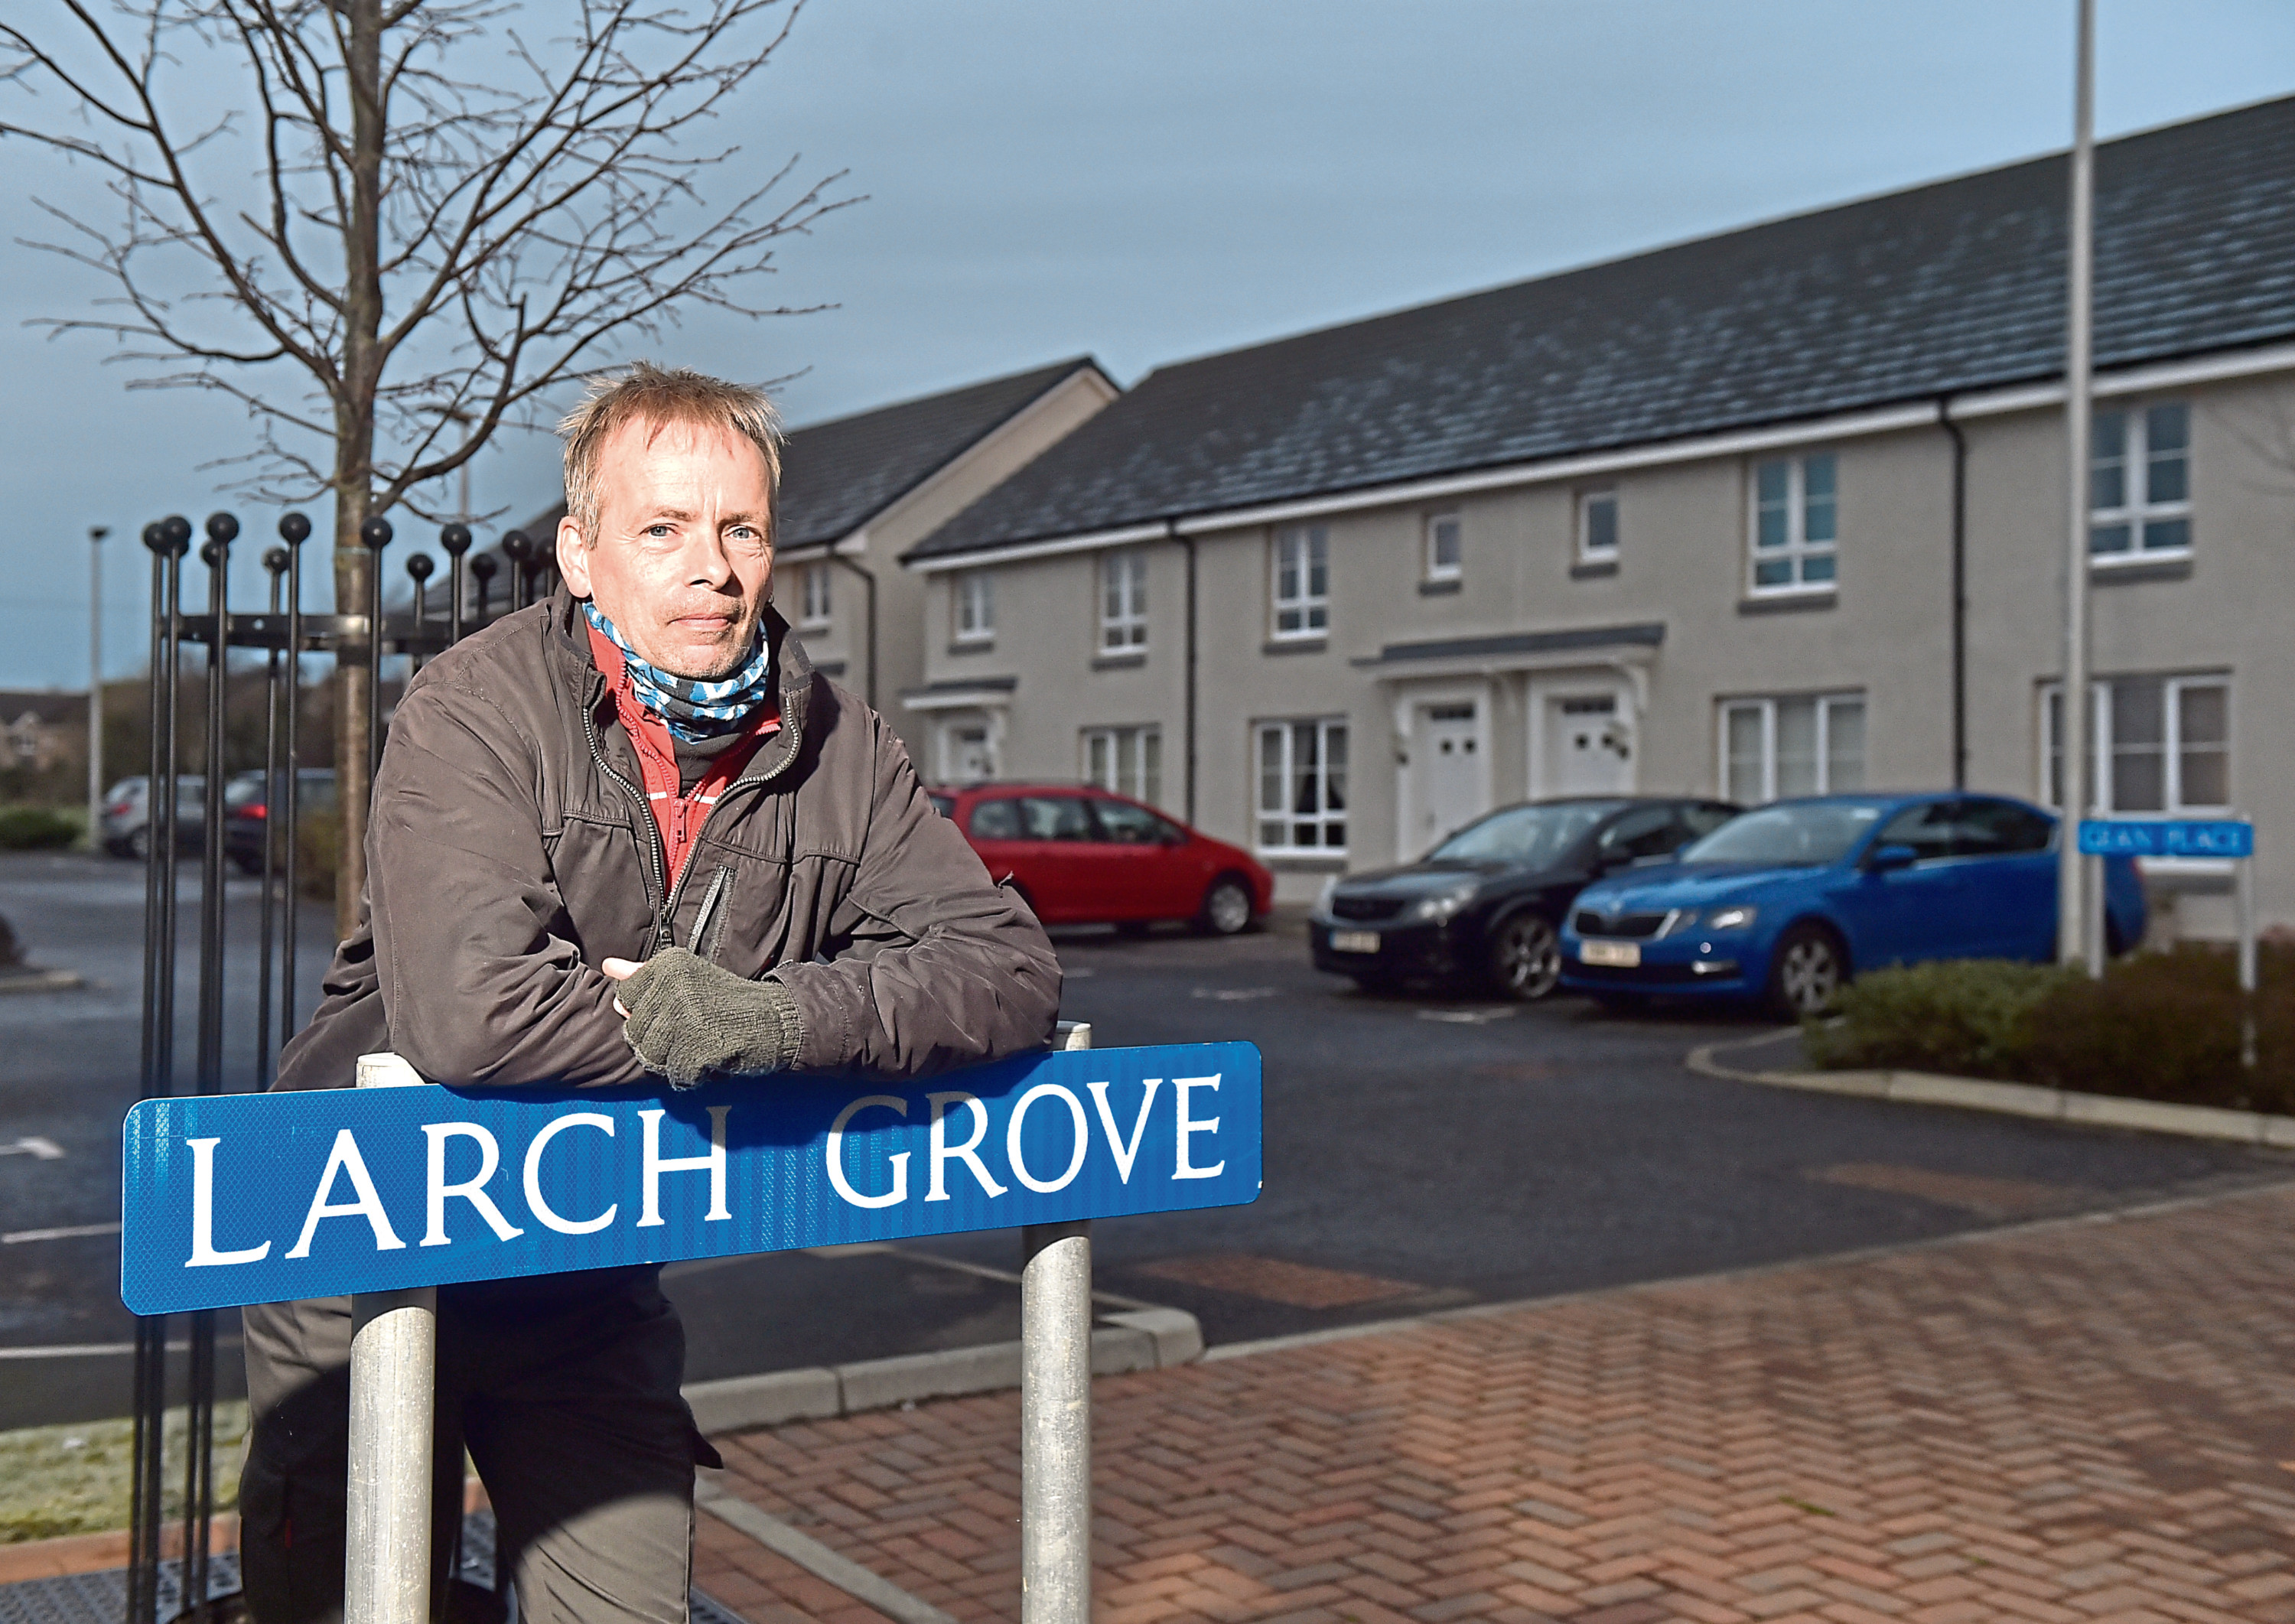 Residents have hit out after grit bins were taken away from their development